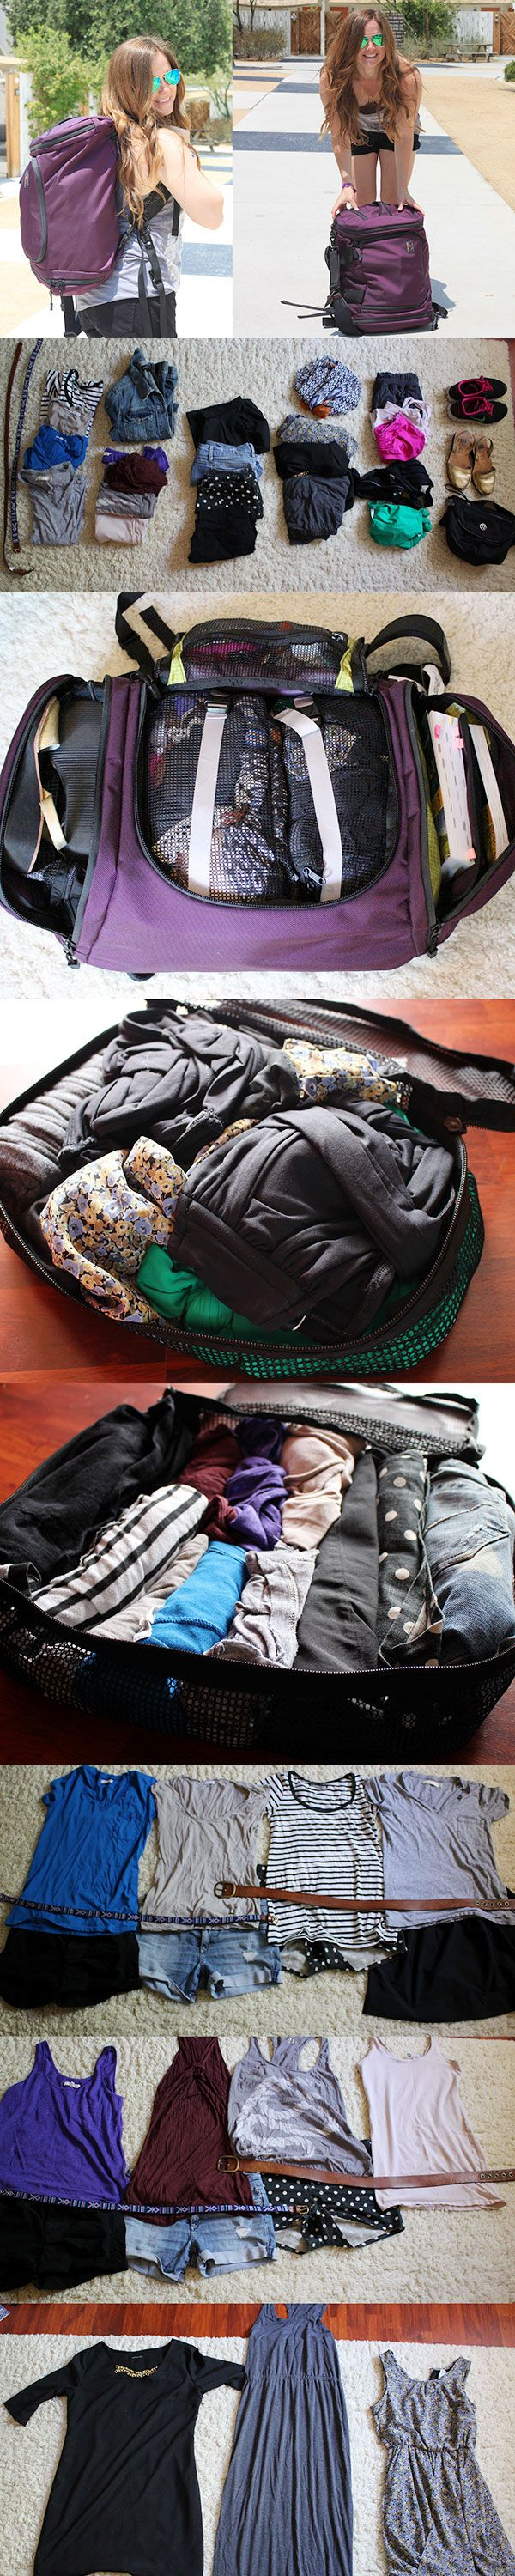 How she packed for a month in Europe using a carry on. WOW!